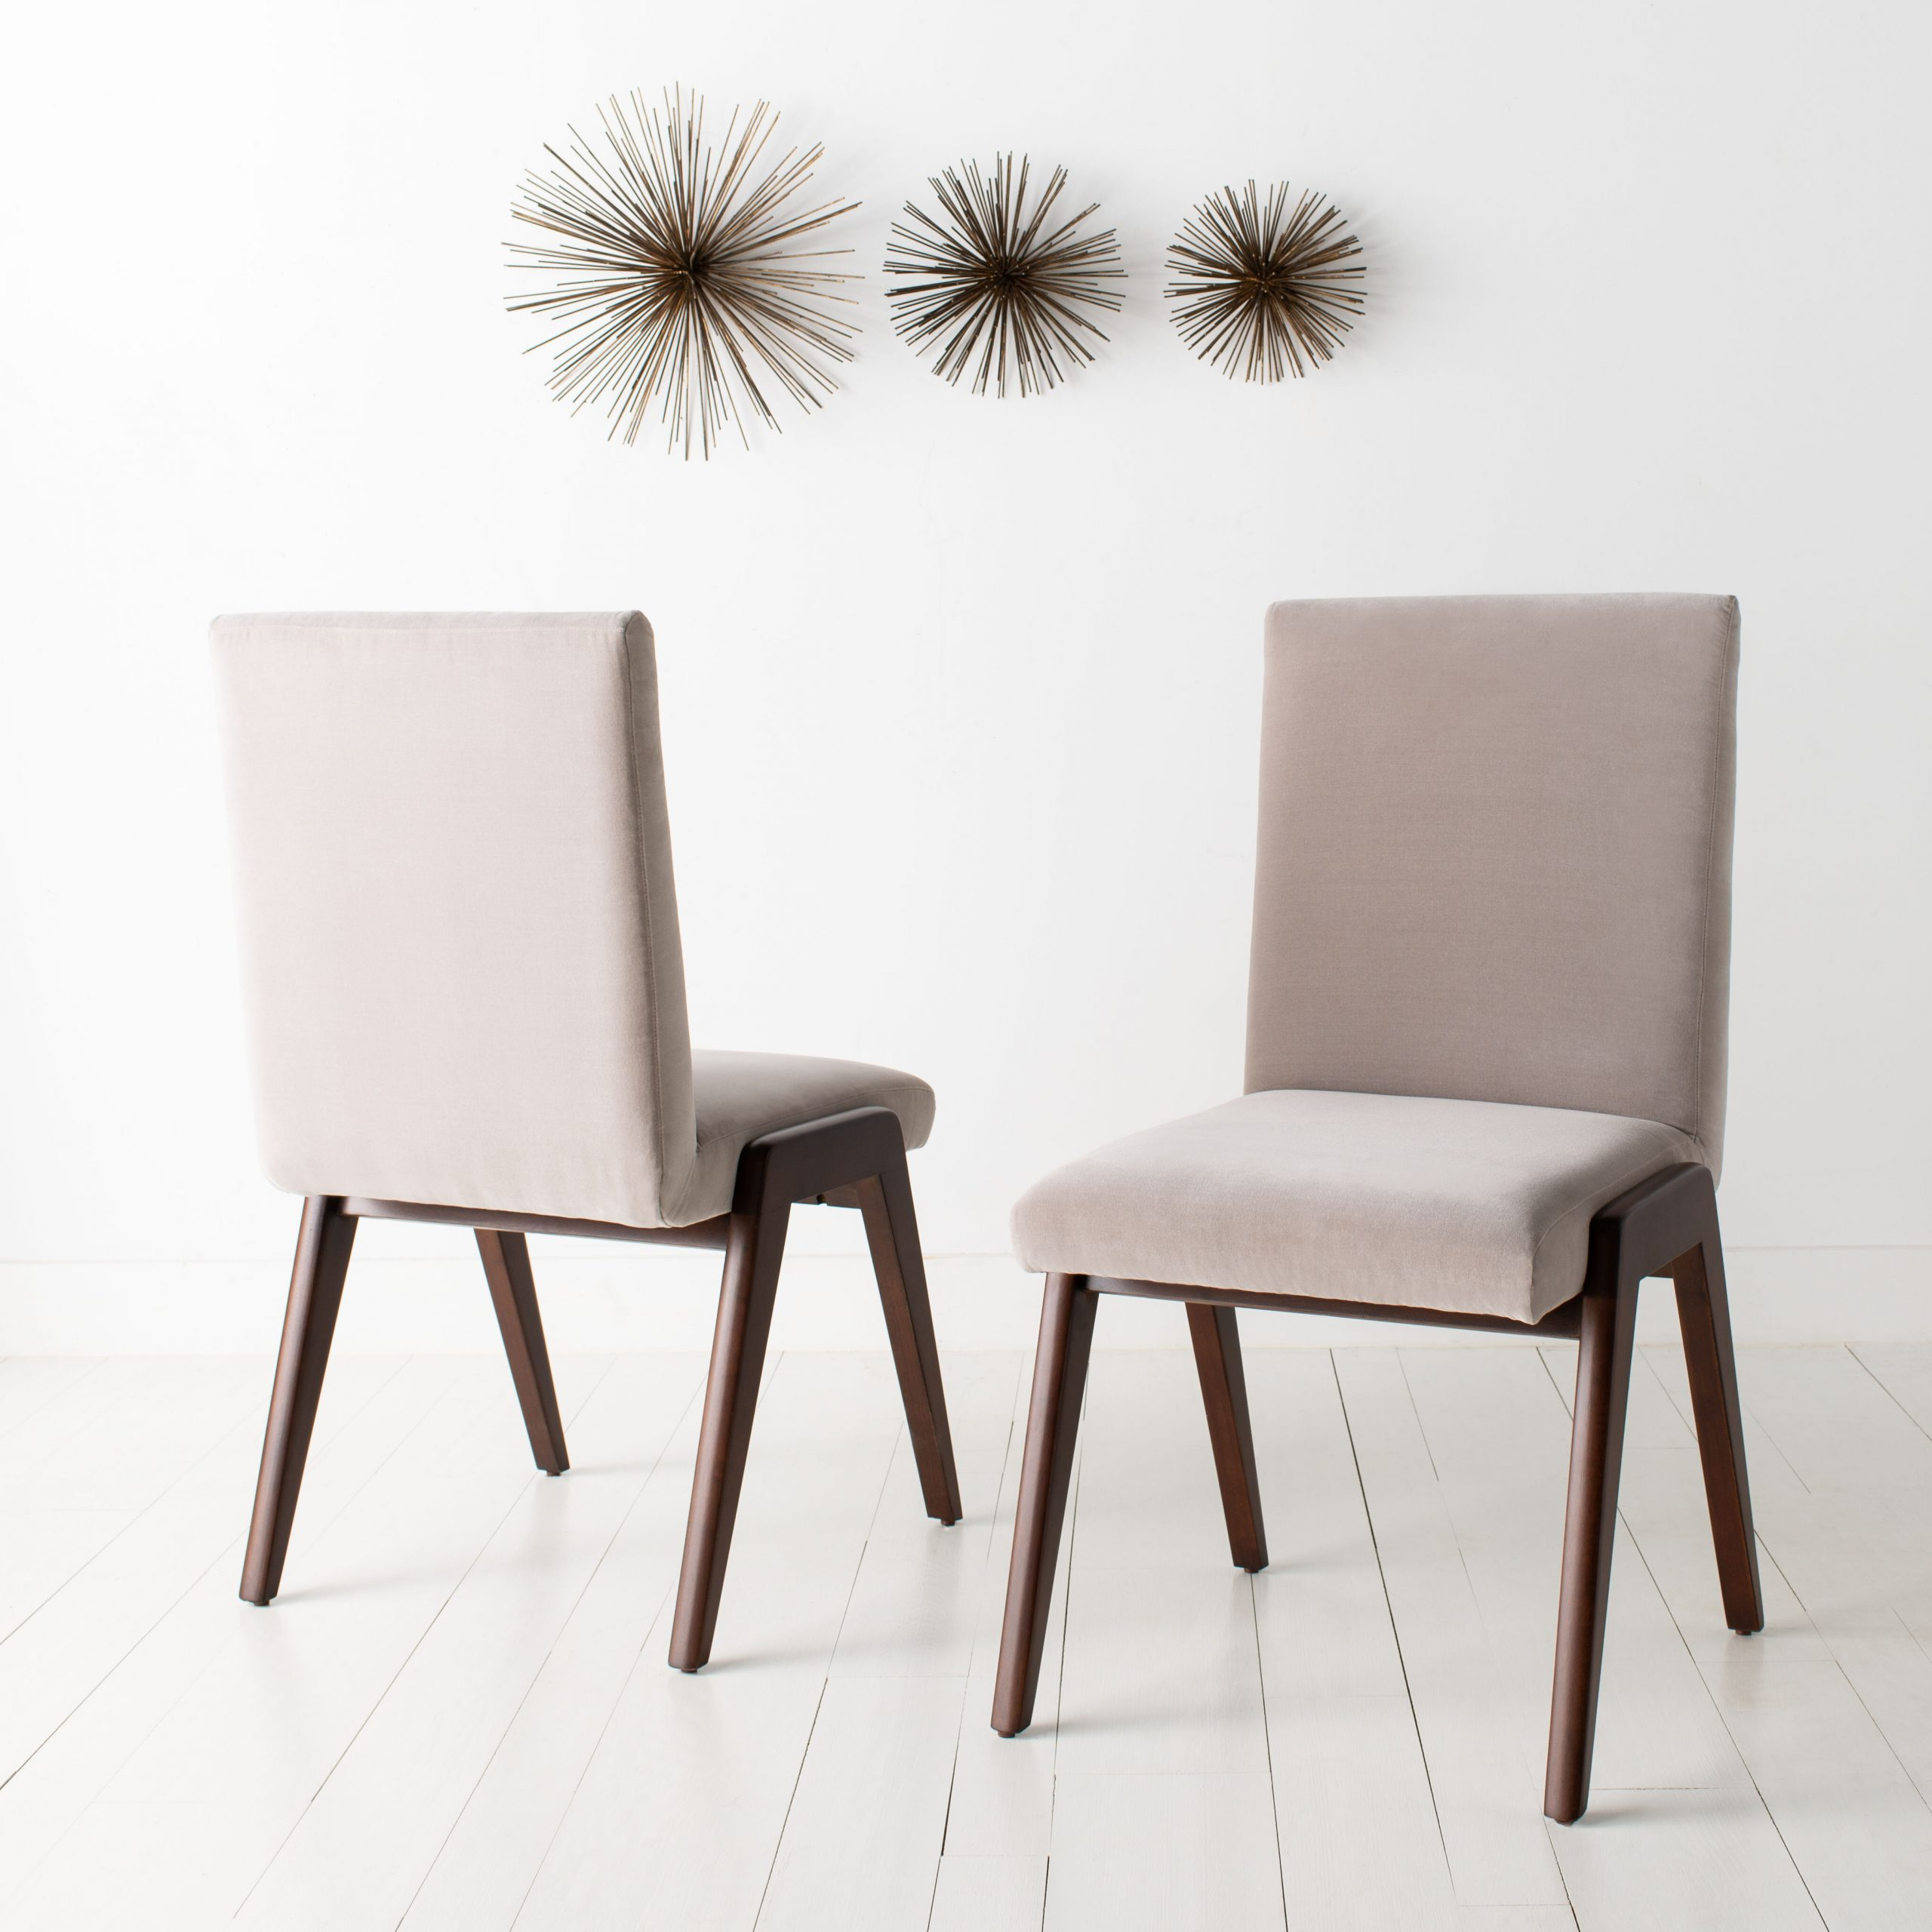 Bricker Upholstered Dining Chair Within Bob Stripe Upholstered Dining Chairs (Set Of 2) (View 14 of 15)